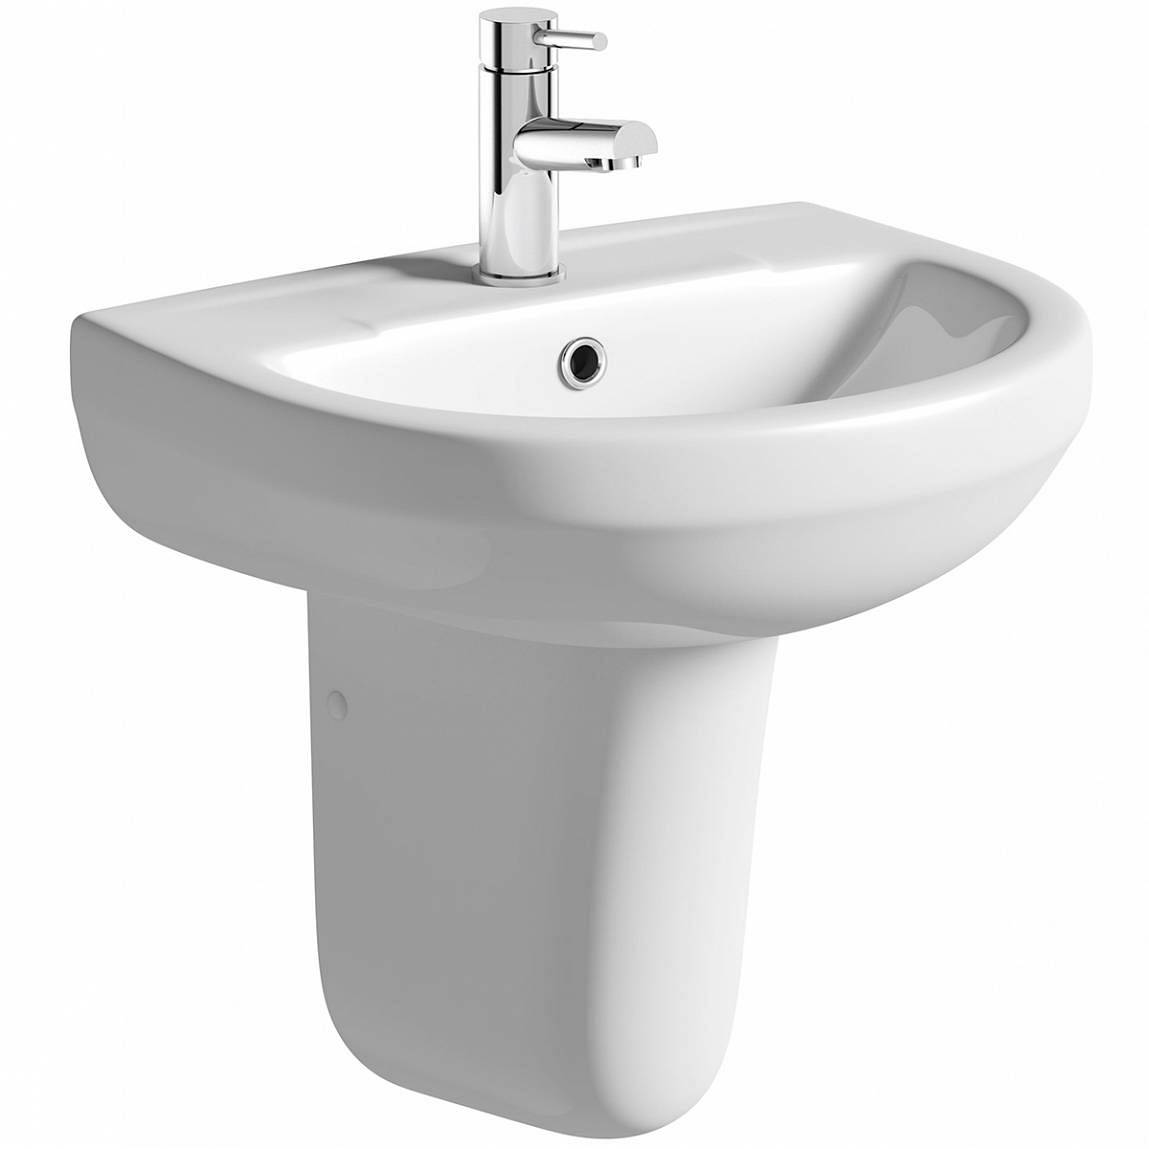 Image of Oakley 550 1TH Basin & Semi Pedestal